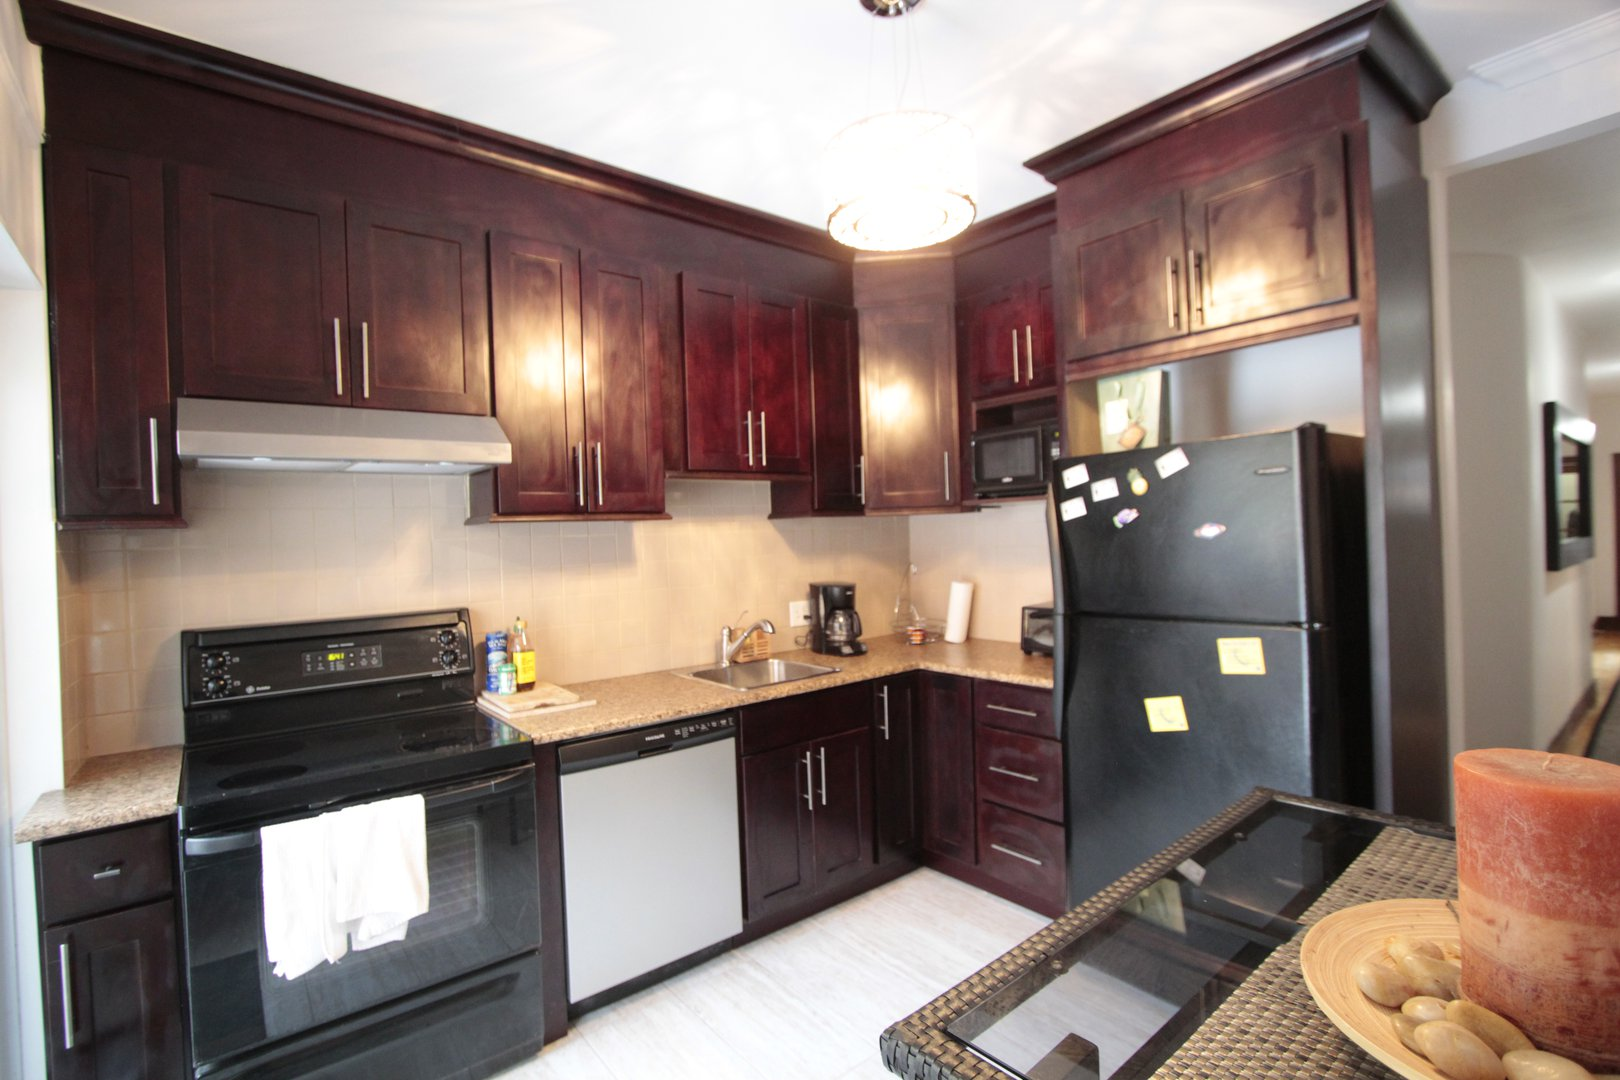 Apartment for rent at 4649 Avenue Clanranald, Montréal, QC. This is the kitchen with stainless steel and hardwood floor.